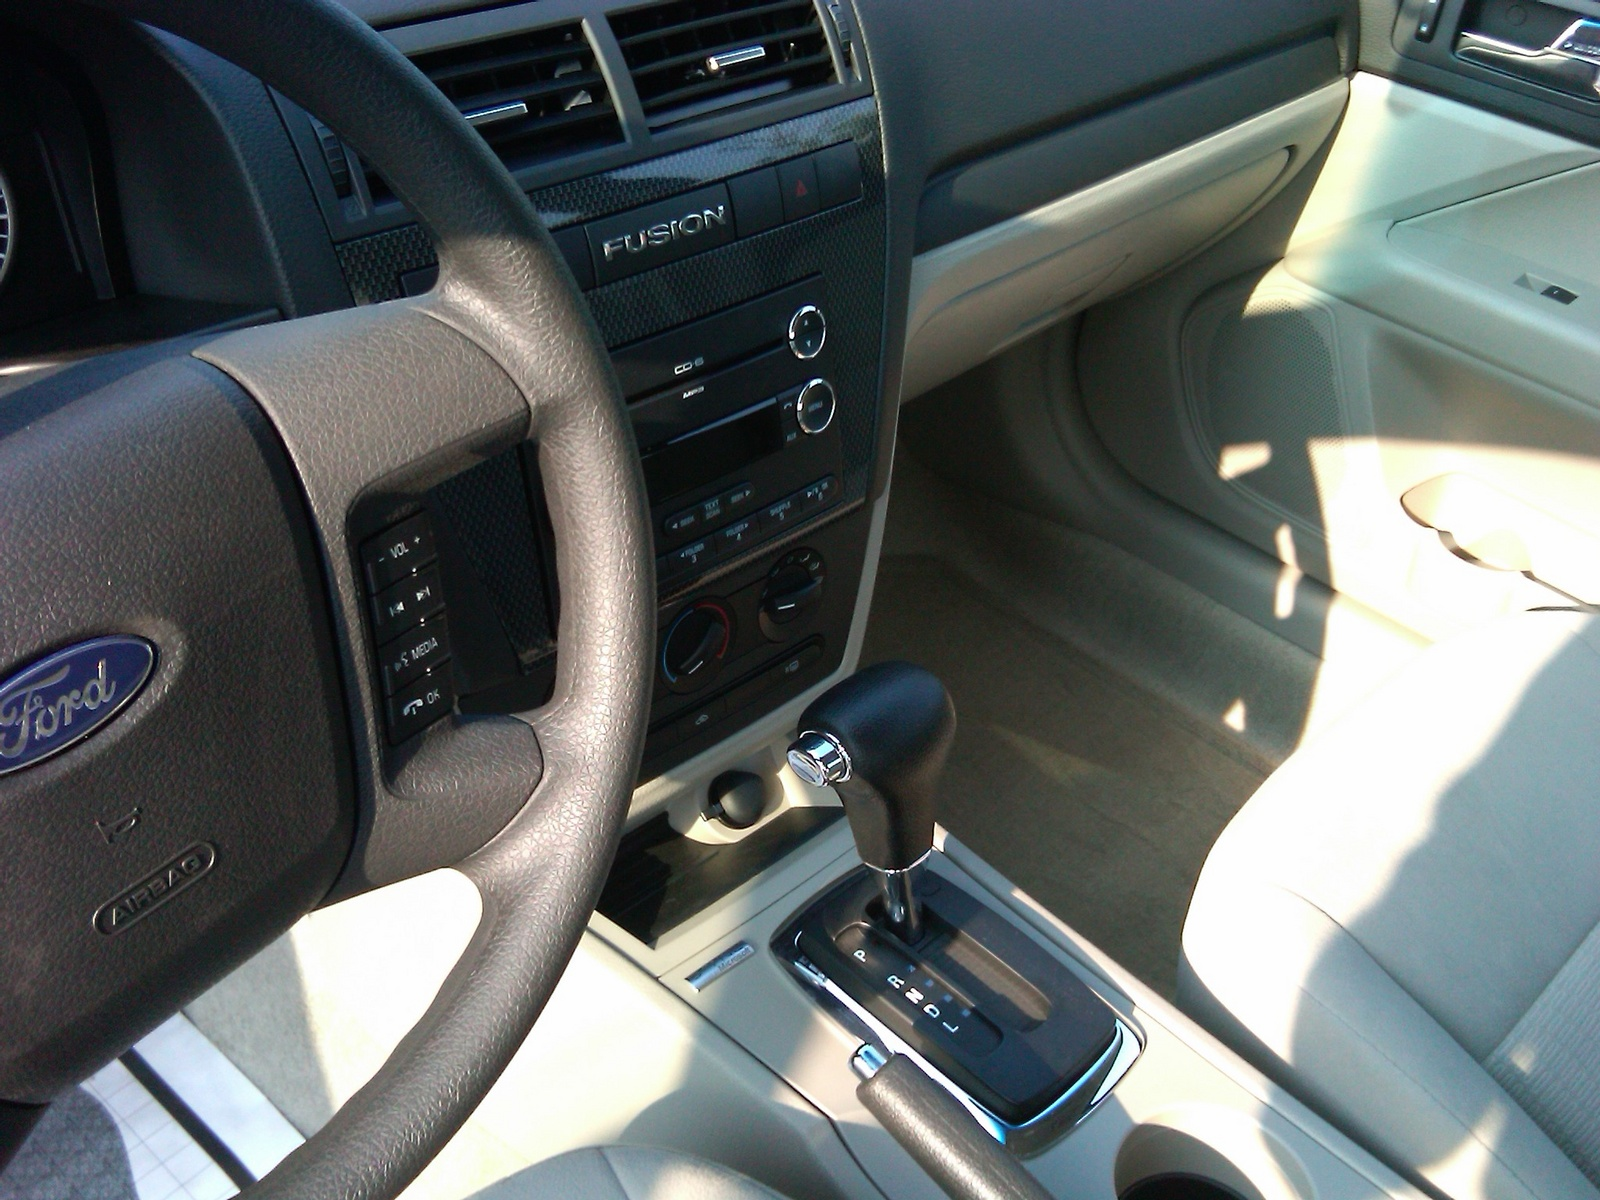 2009 Ford Fusion Interior Dimensions